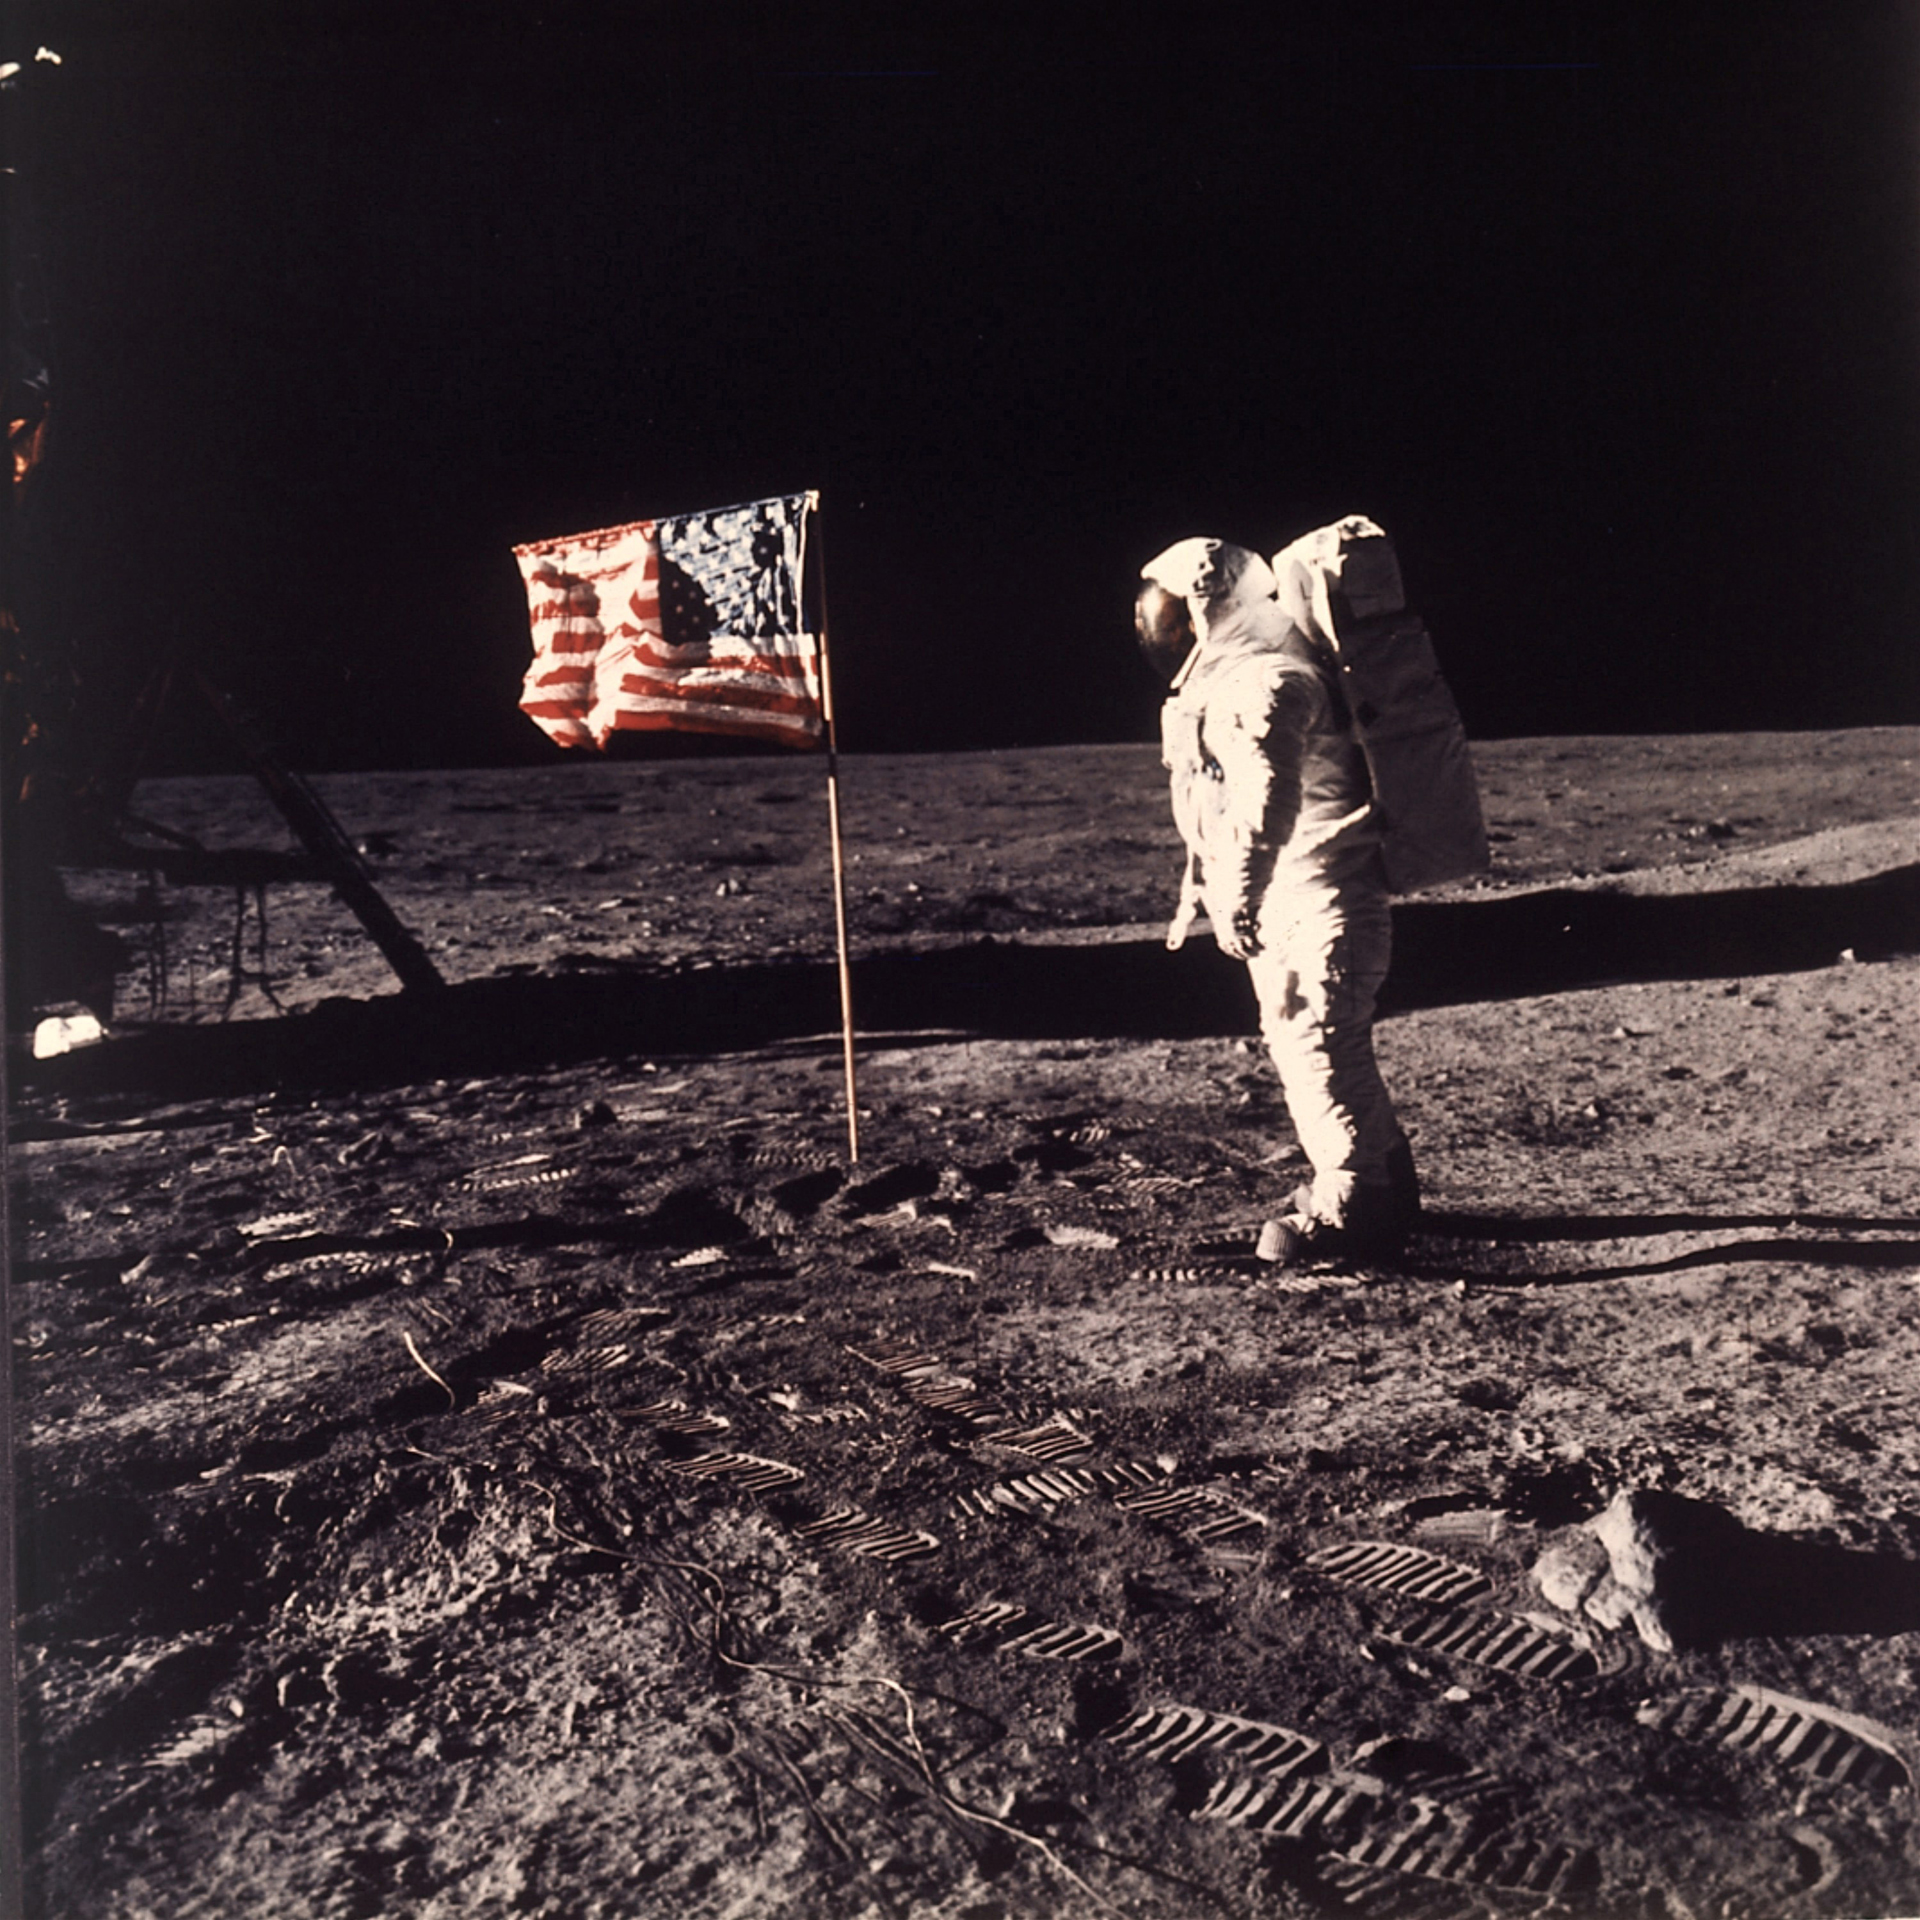 Westlake Legal Group ap-moon Vanessa Oblinger-Santos: This Independence Day, let's celebrate the patriotism Buzz Aldrin has exemplified Vanessa Oblinger-Santos fox-news/us/personal-freedoms/proud-american fox-news/science/air-and-space/nasa fox-news/science/air-and-space/moon fox-news/science/air-and-space fox-news/opinion fox news fnc/opinion fnc article a9273274-d33b-5dcb-87c5-b2455c23282d